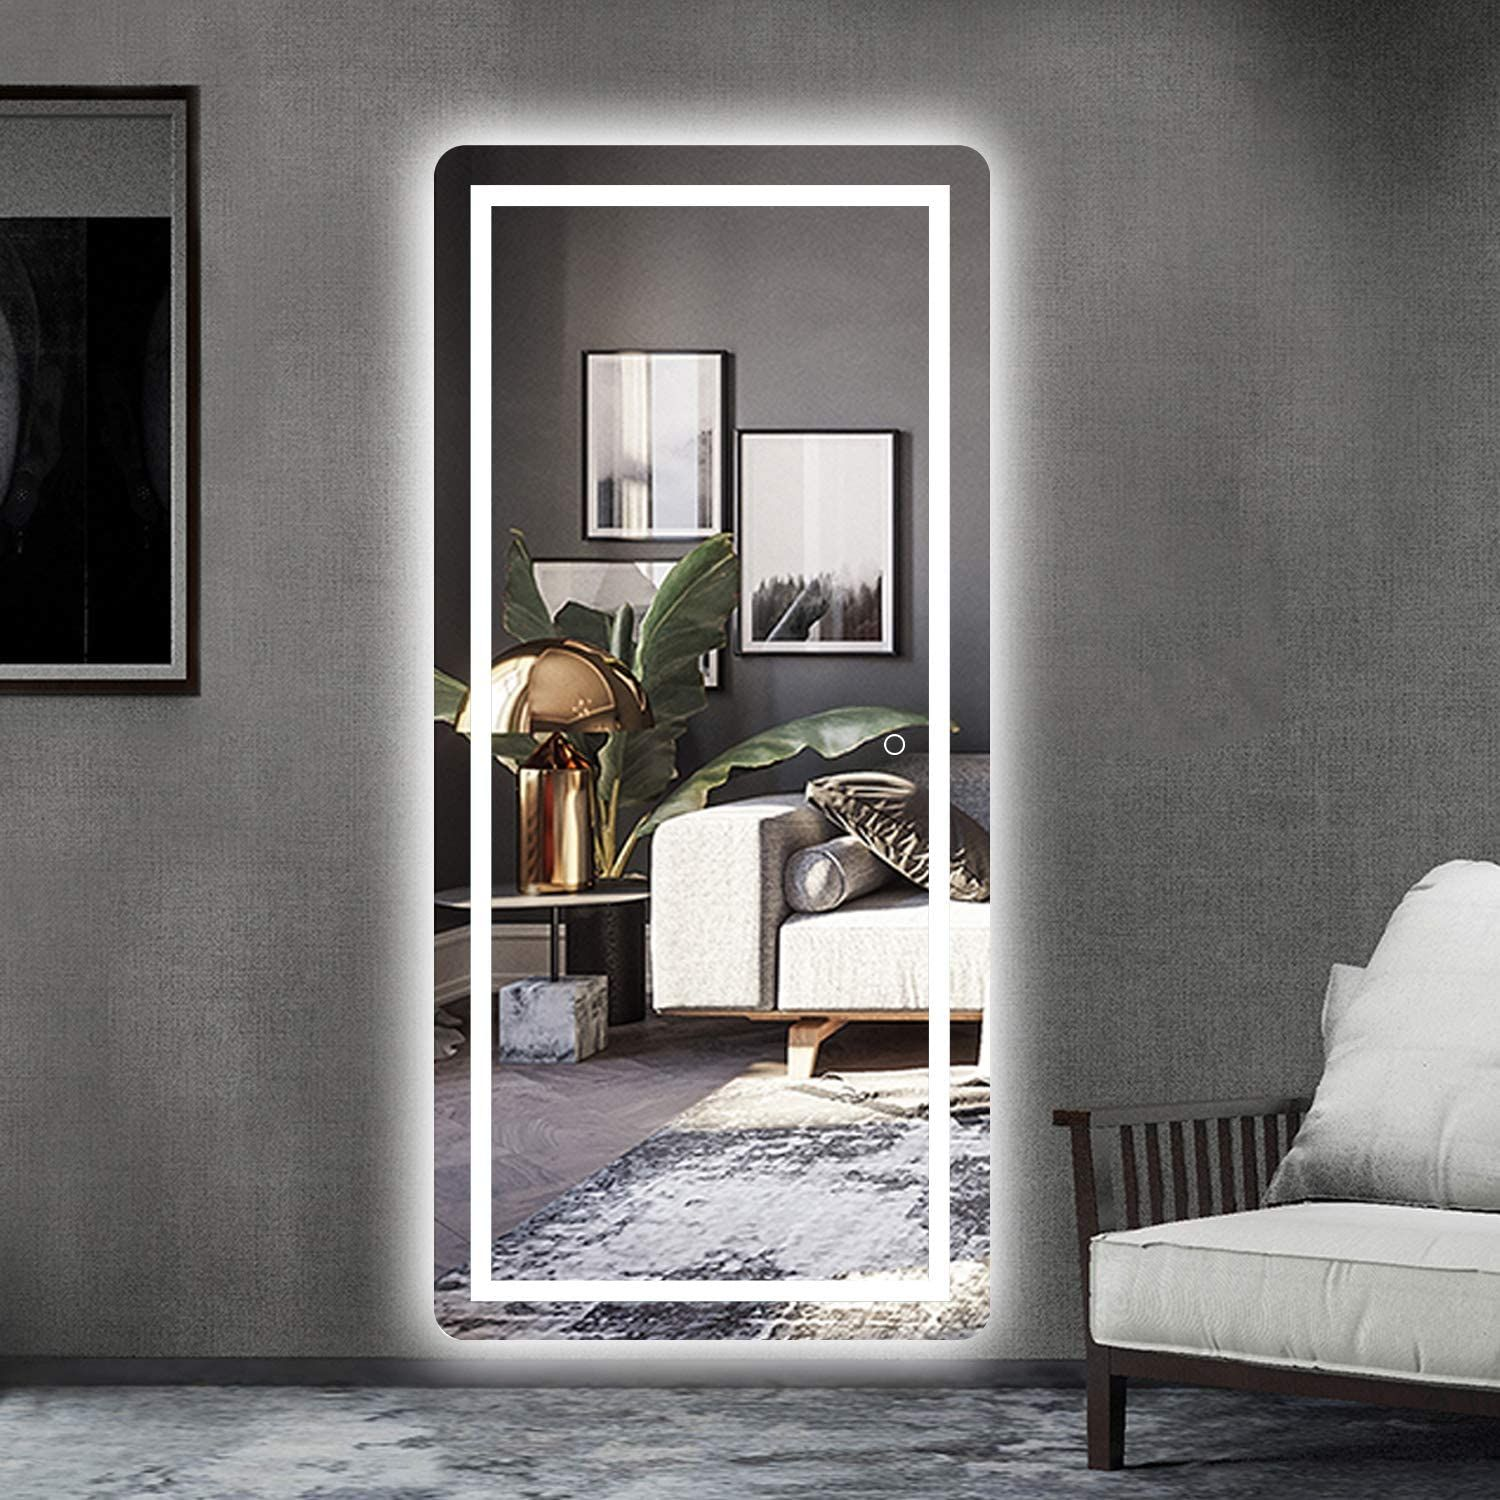 Led Mirror Full Length Mirror Wall Mounted Mirror With Lights Dressing Mirror For Bathroom Bedroom Living Room Dimmer Touch Switch Waterproof 47 X 22 Walmar Mirror Decor Living Room Living Room Mirrors Full length mirror with led lights